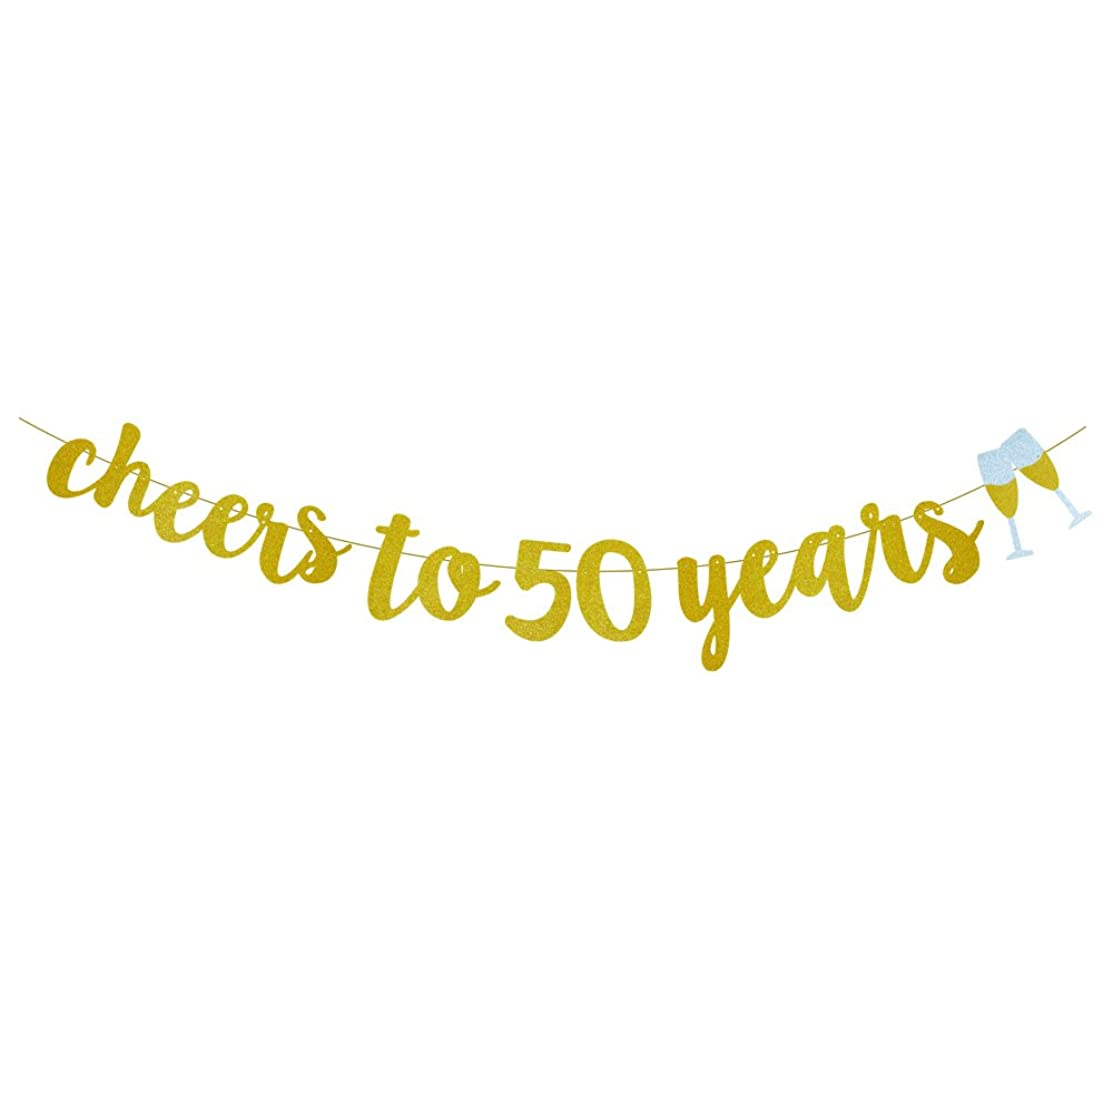 GOER Gold Glitter cheers to 50 years Champagne Glasses Banner for 50th Birthday Party Decorations